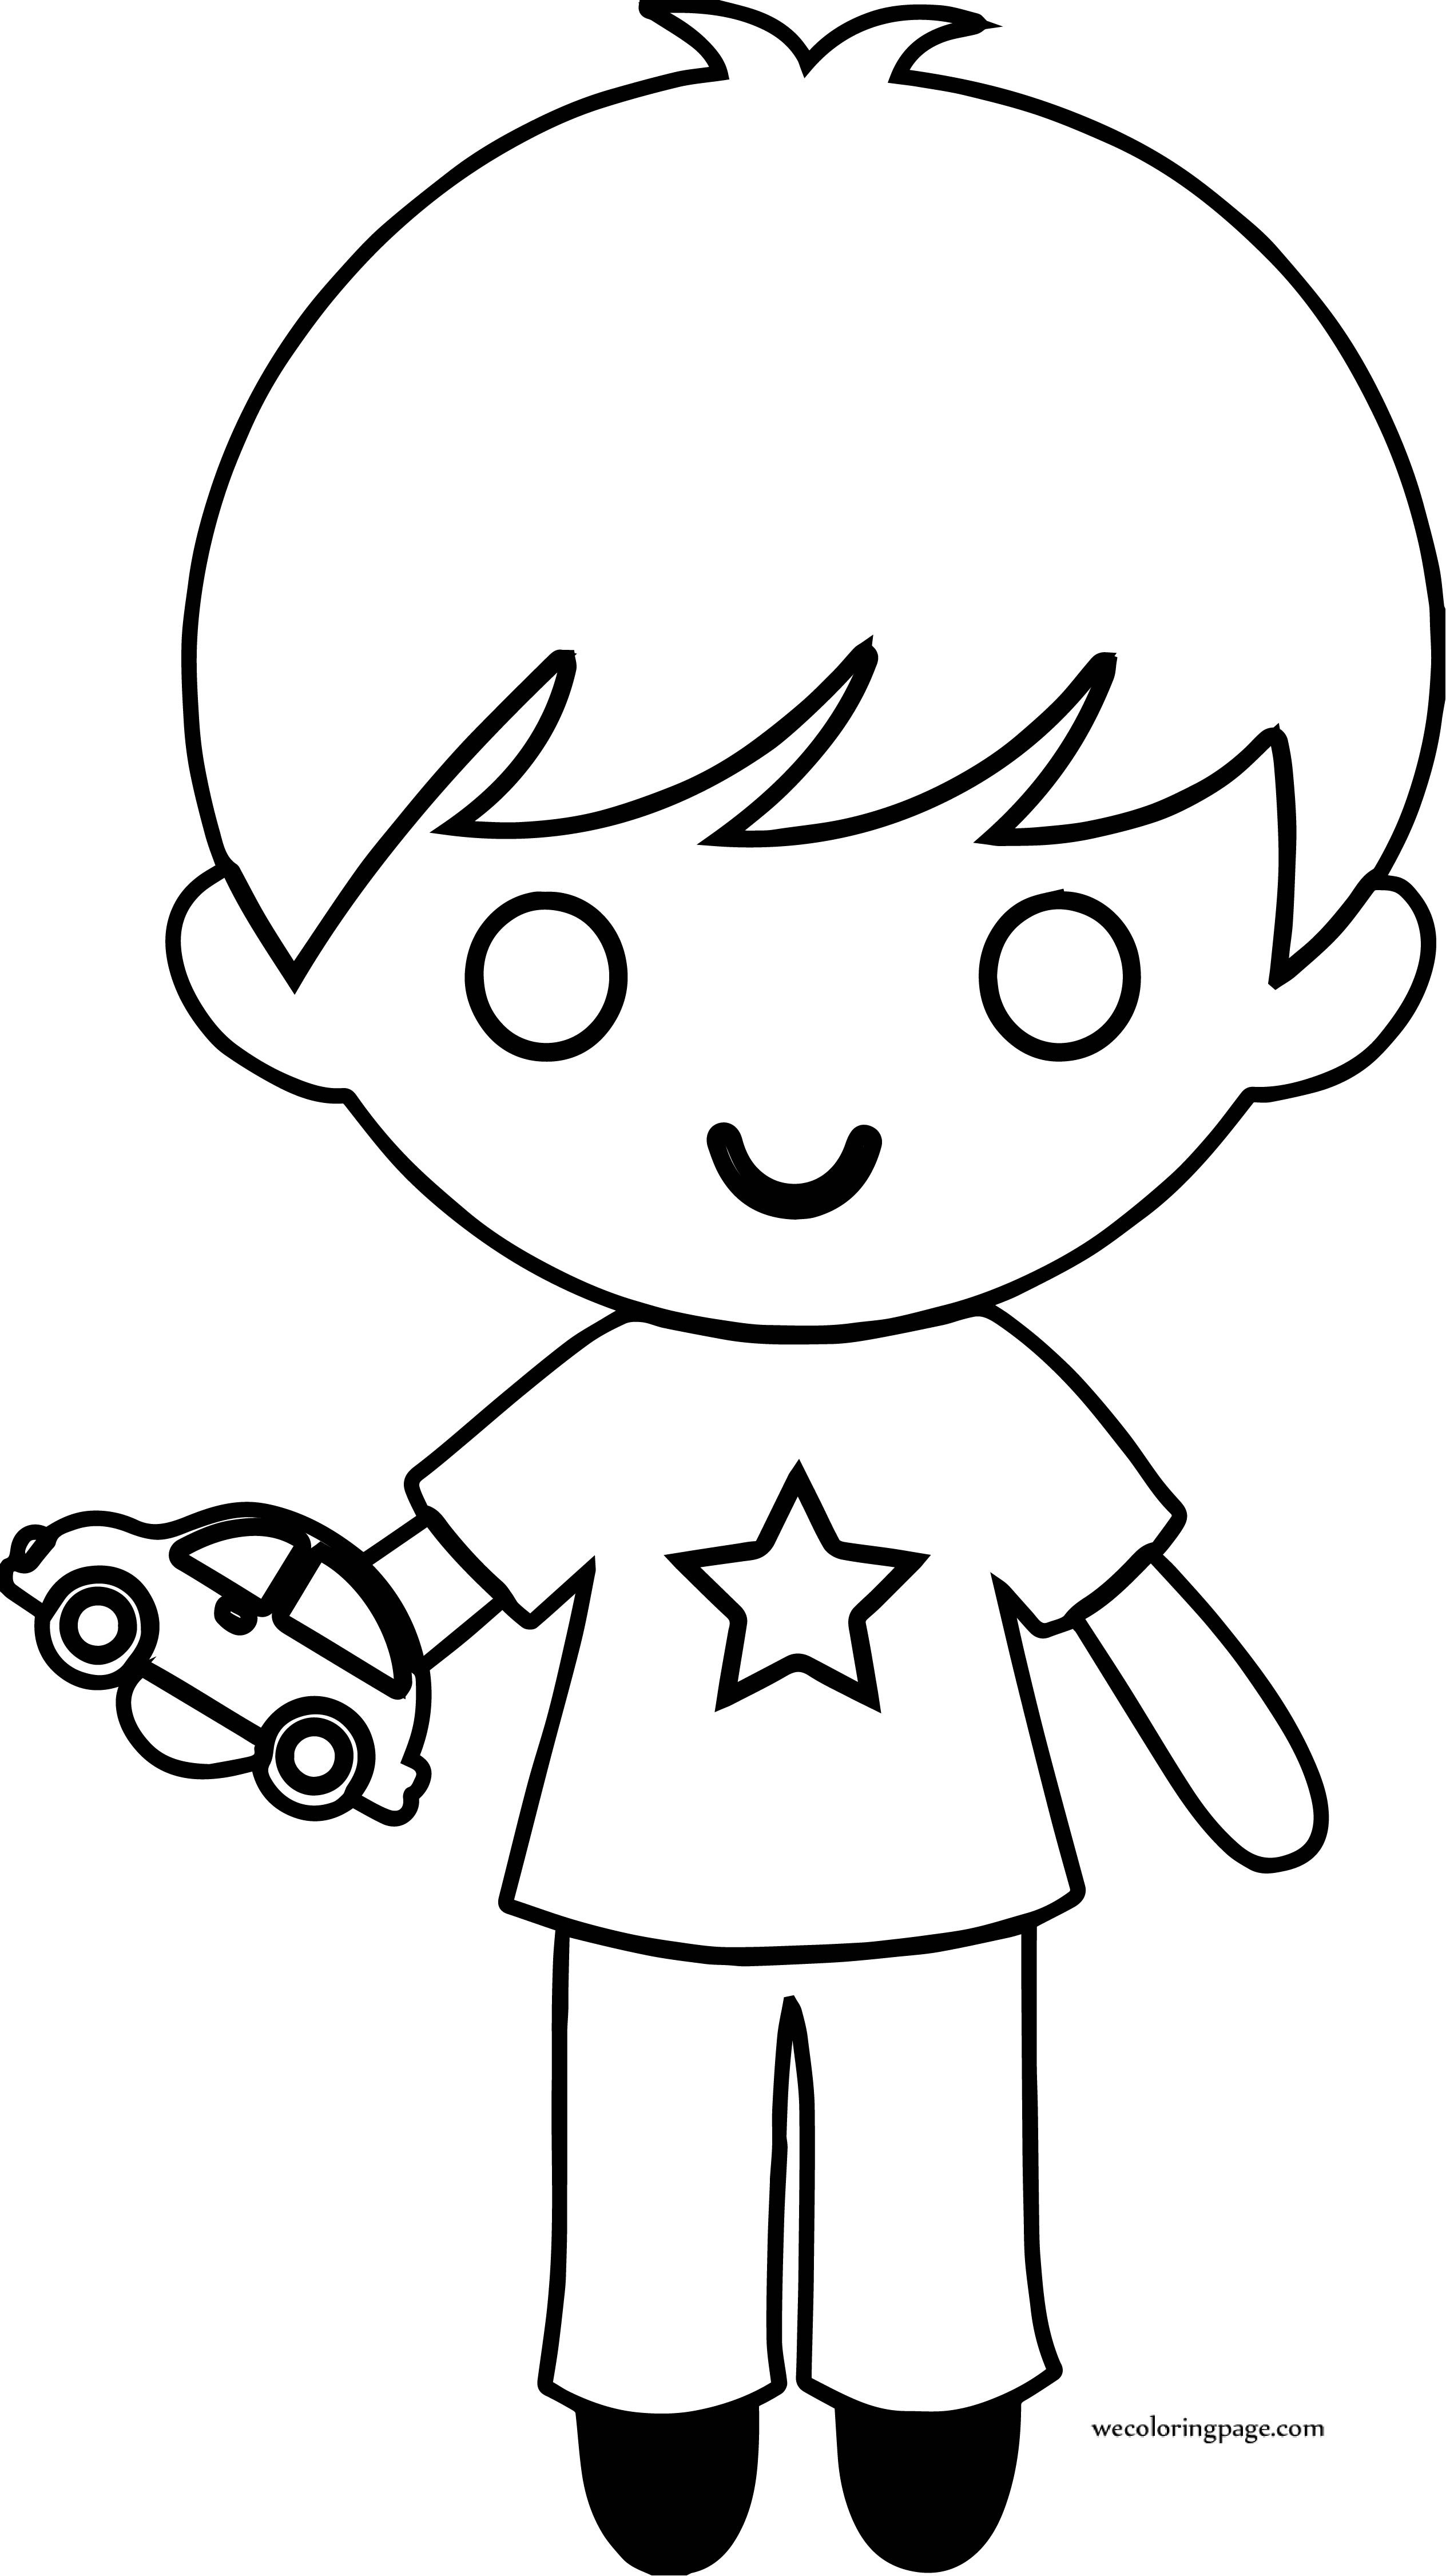 Toys For Boys To Color : Star boy with toy car coloring page wecoloringpage